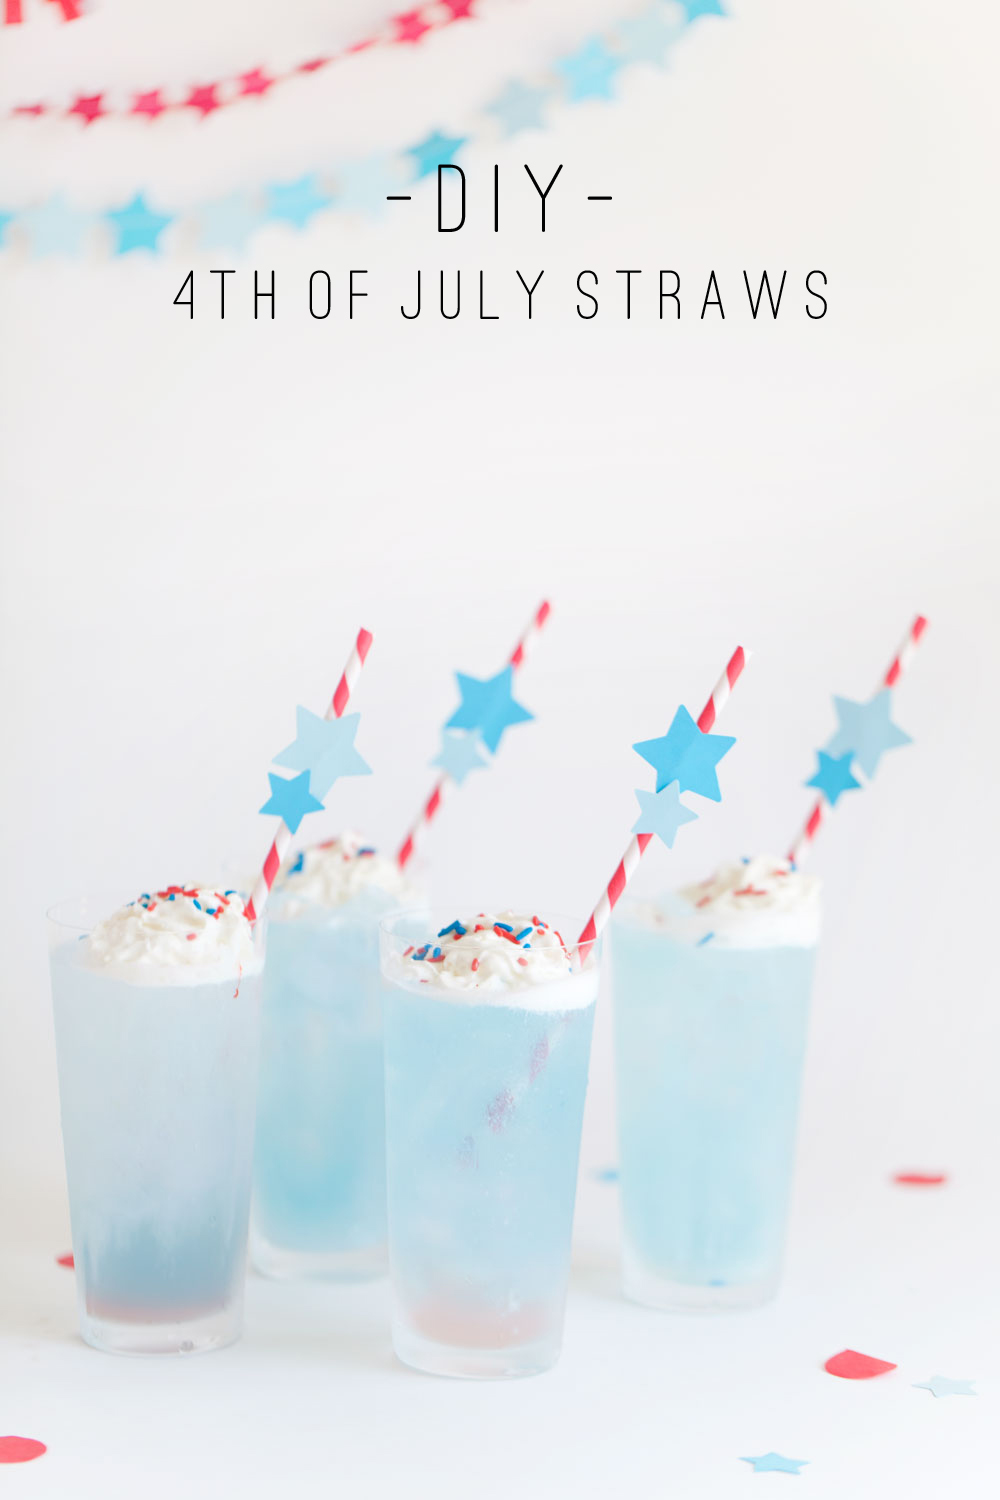 DIY 4th of-july drink stirrers-